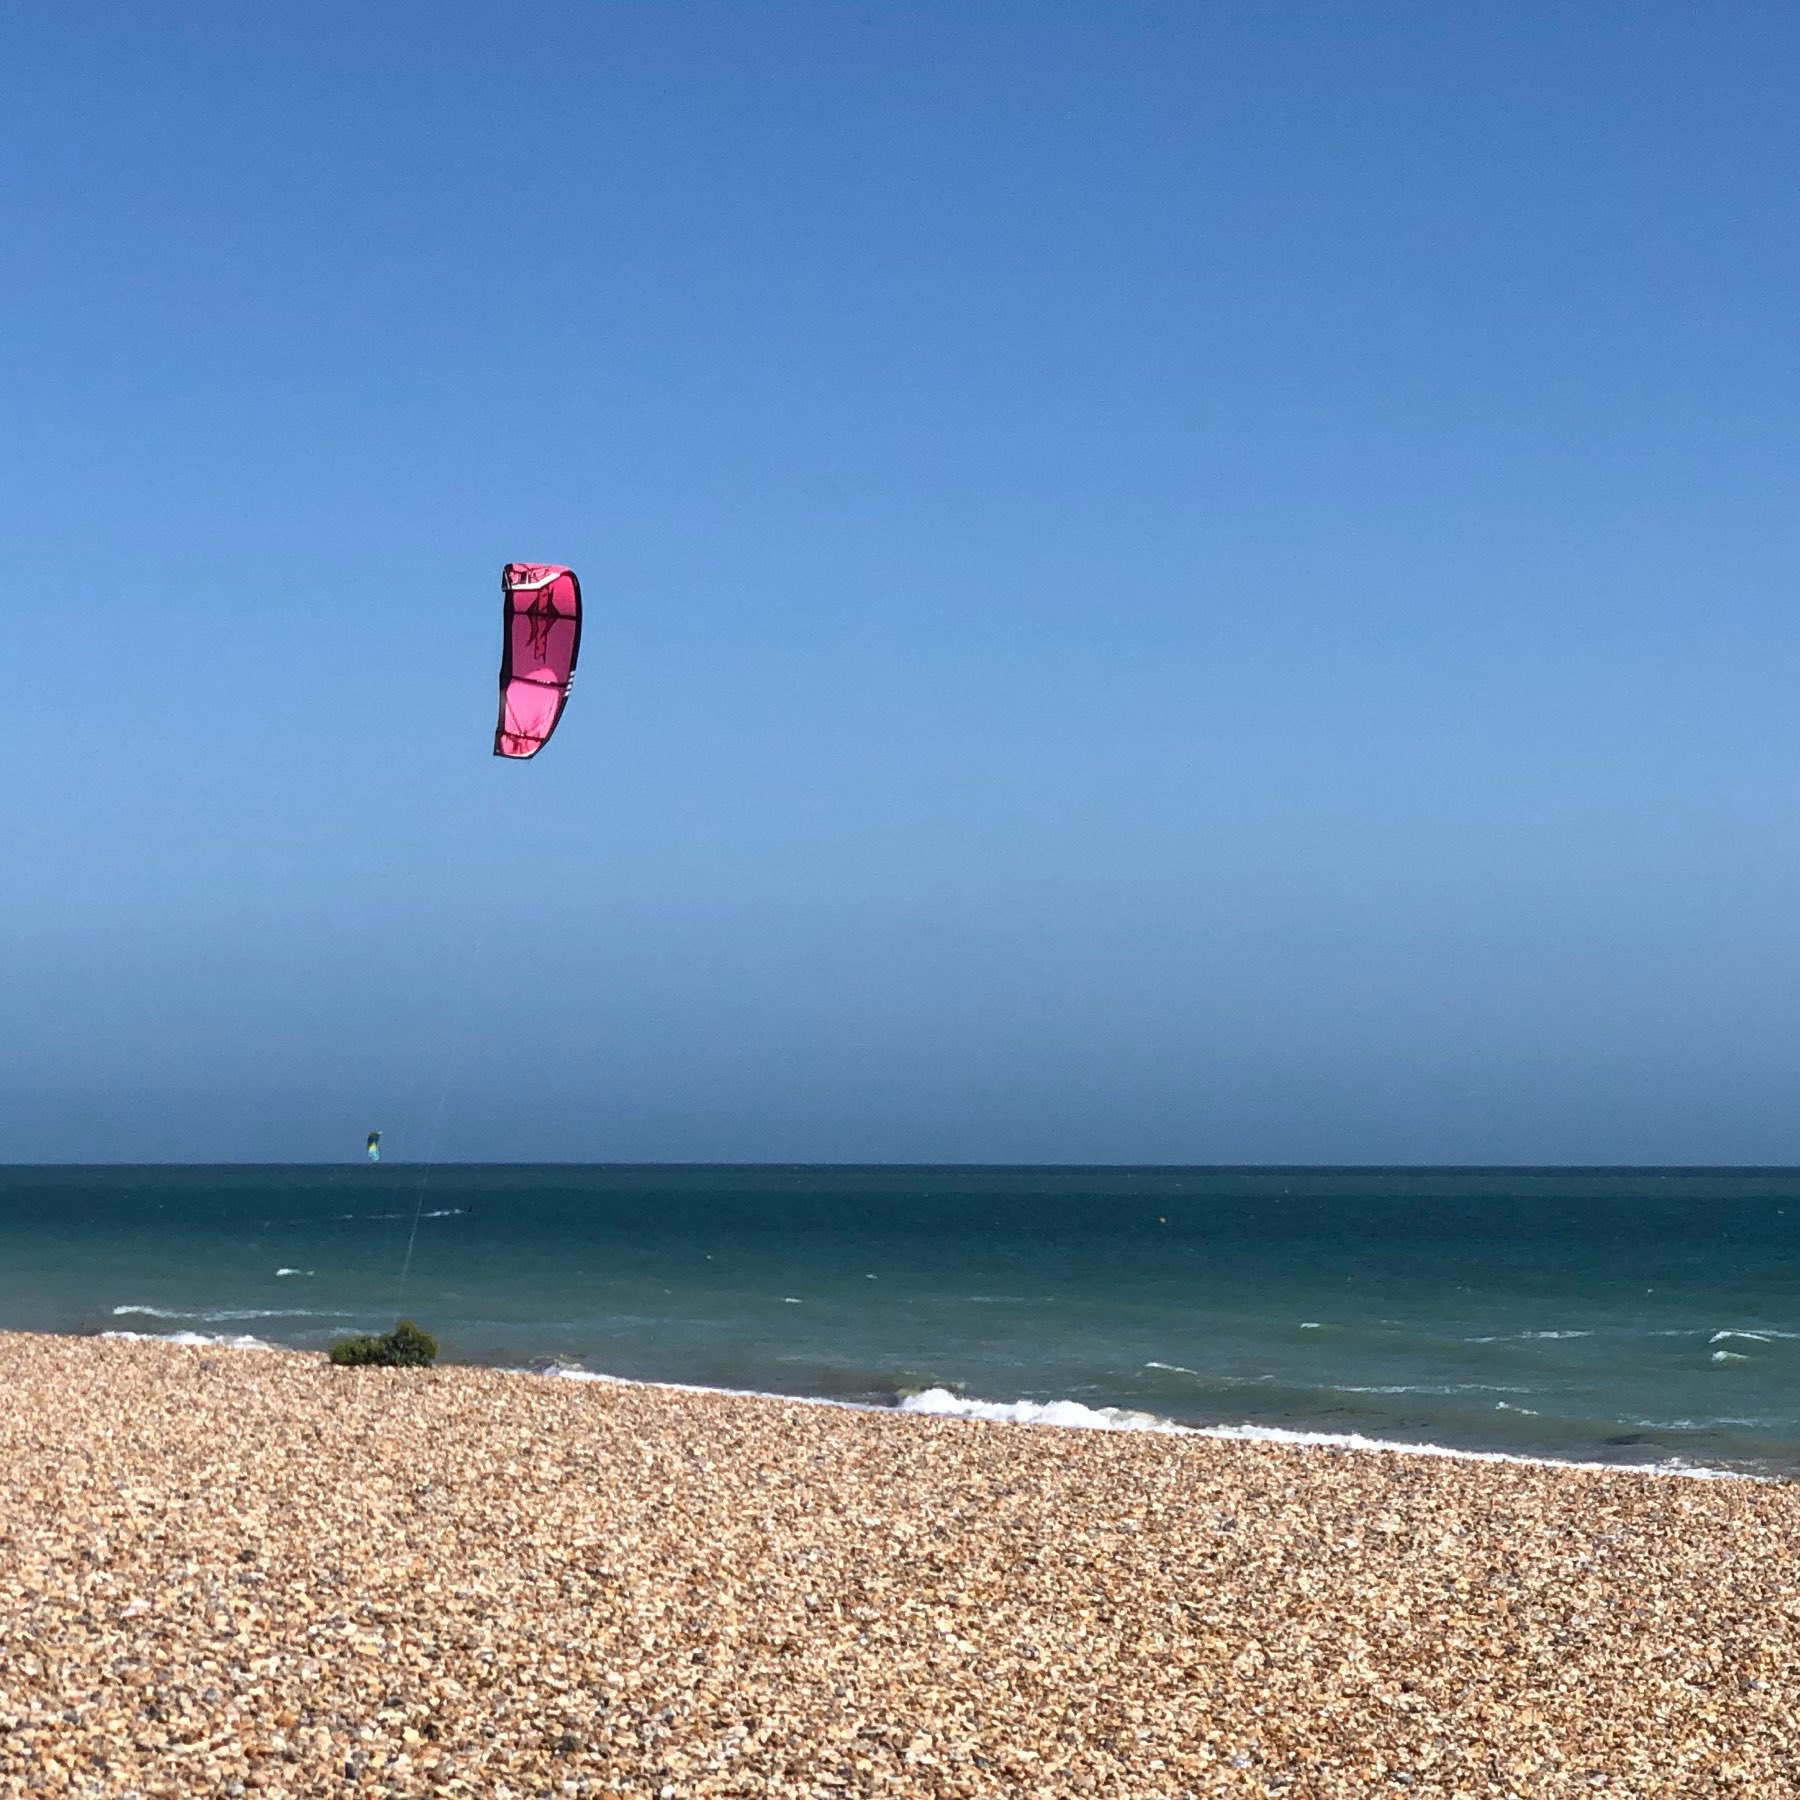 kite-surfer on Shoreham Beach